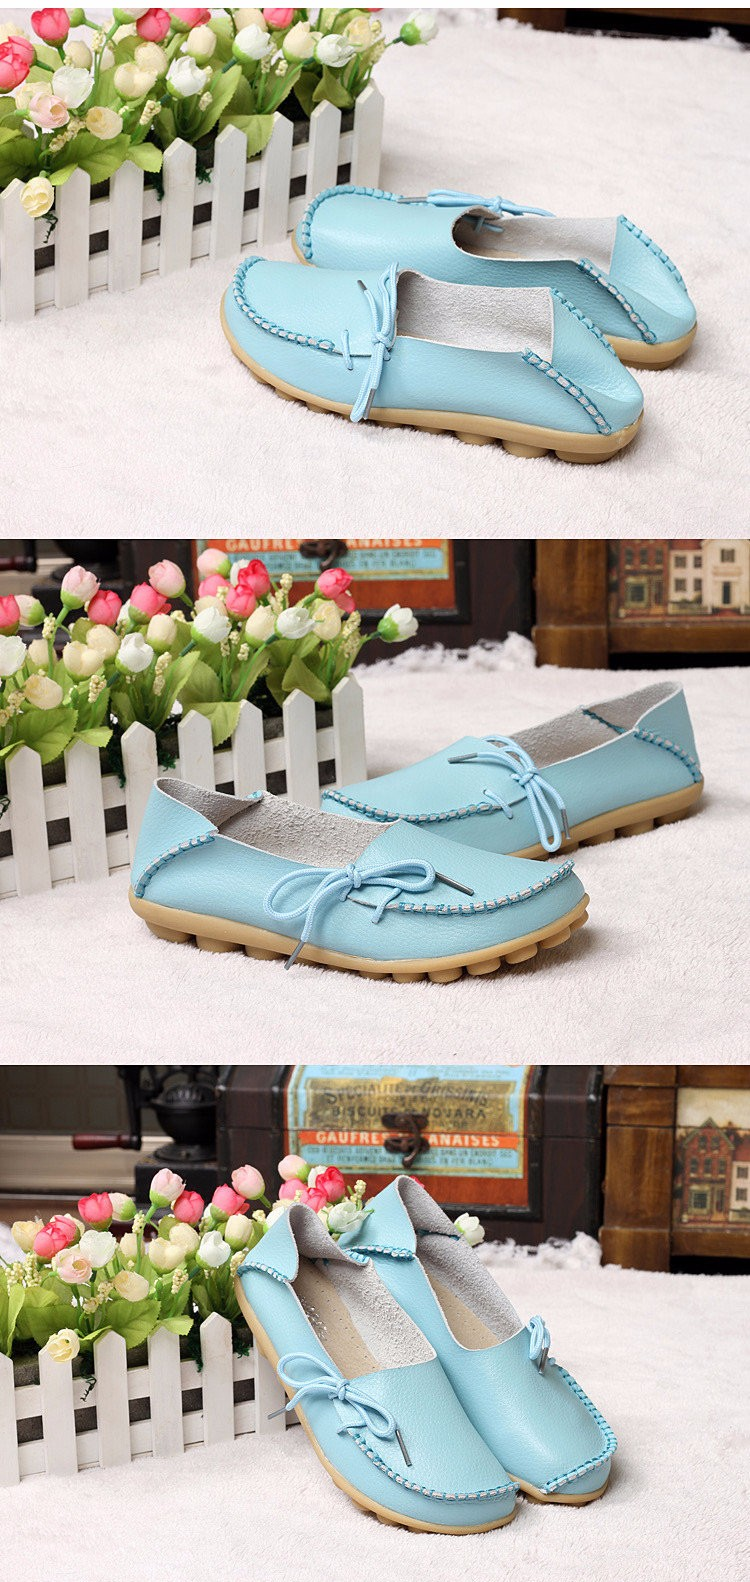 2016 New Real Leather Woman Flats Moccasins Mother Loafers Lacing Female Driving Casual Shoes In 16 Colors Size 34-44 ST179 (11)